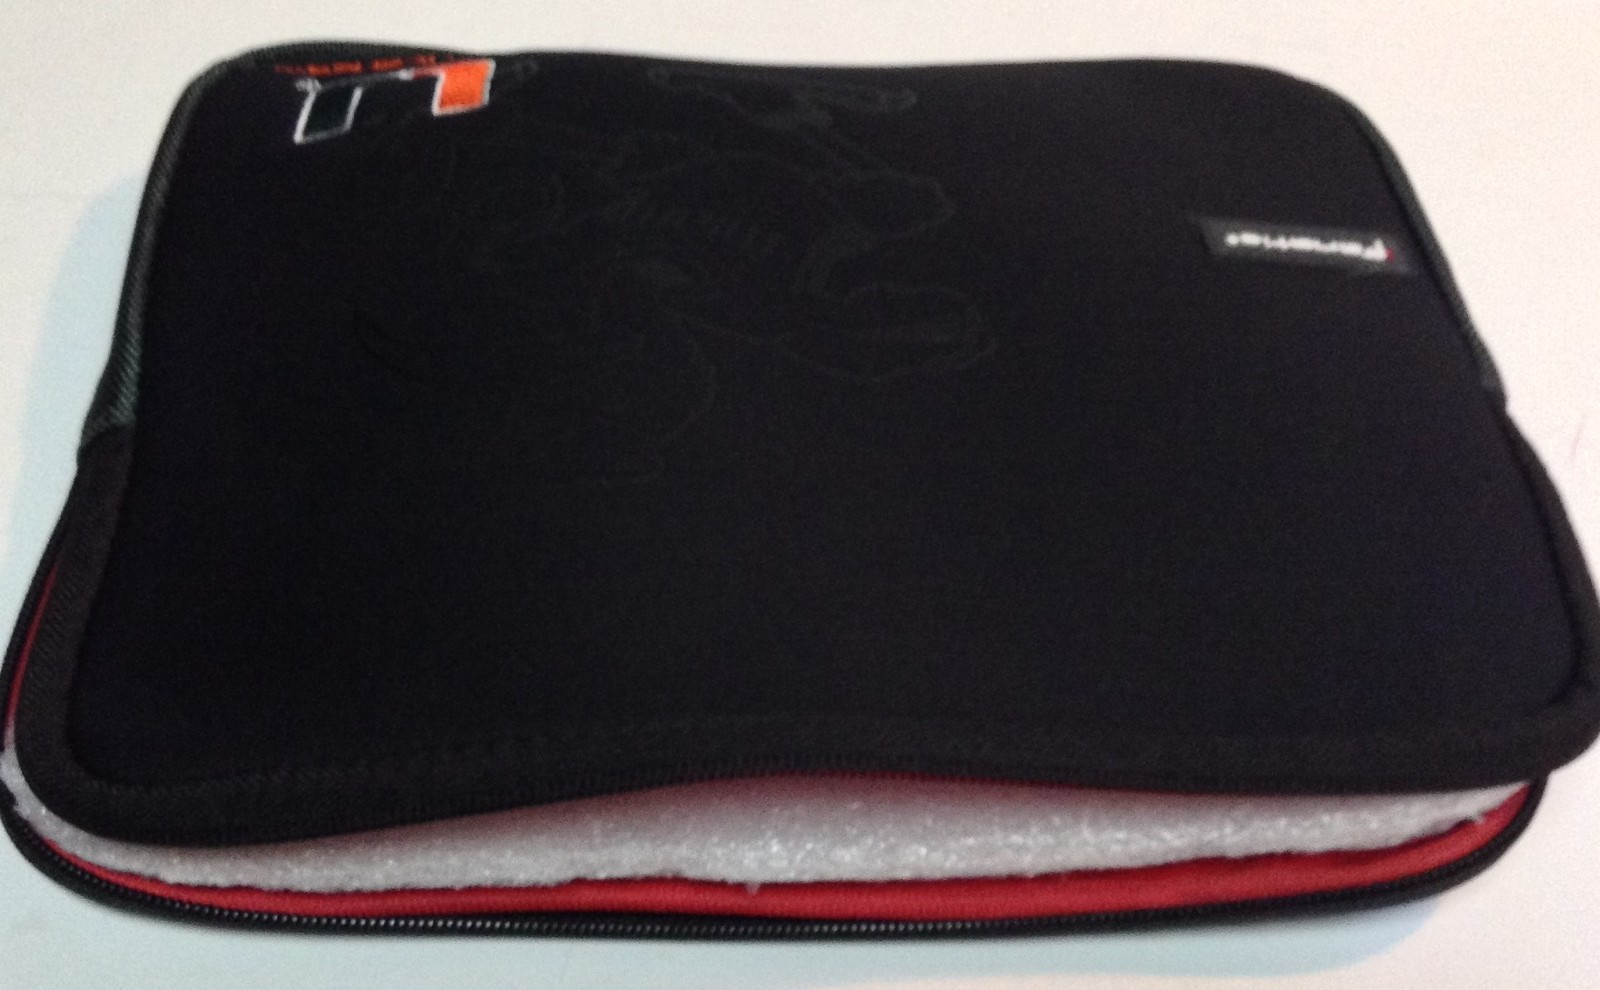 Miami Hurricanes University Tablet Ipad Laptop Protection Case by Fanatic NWT